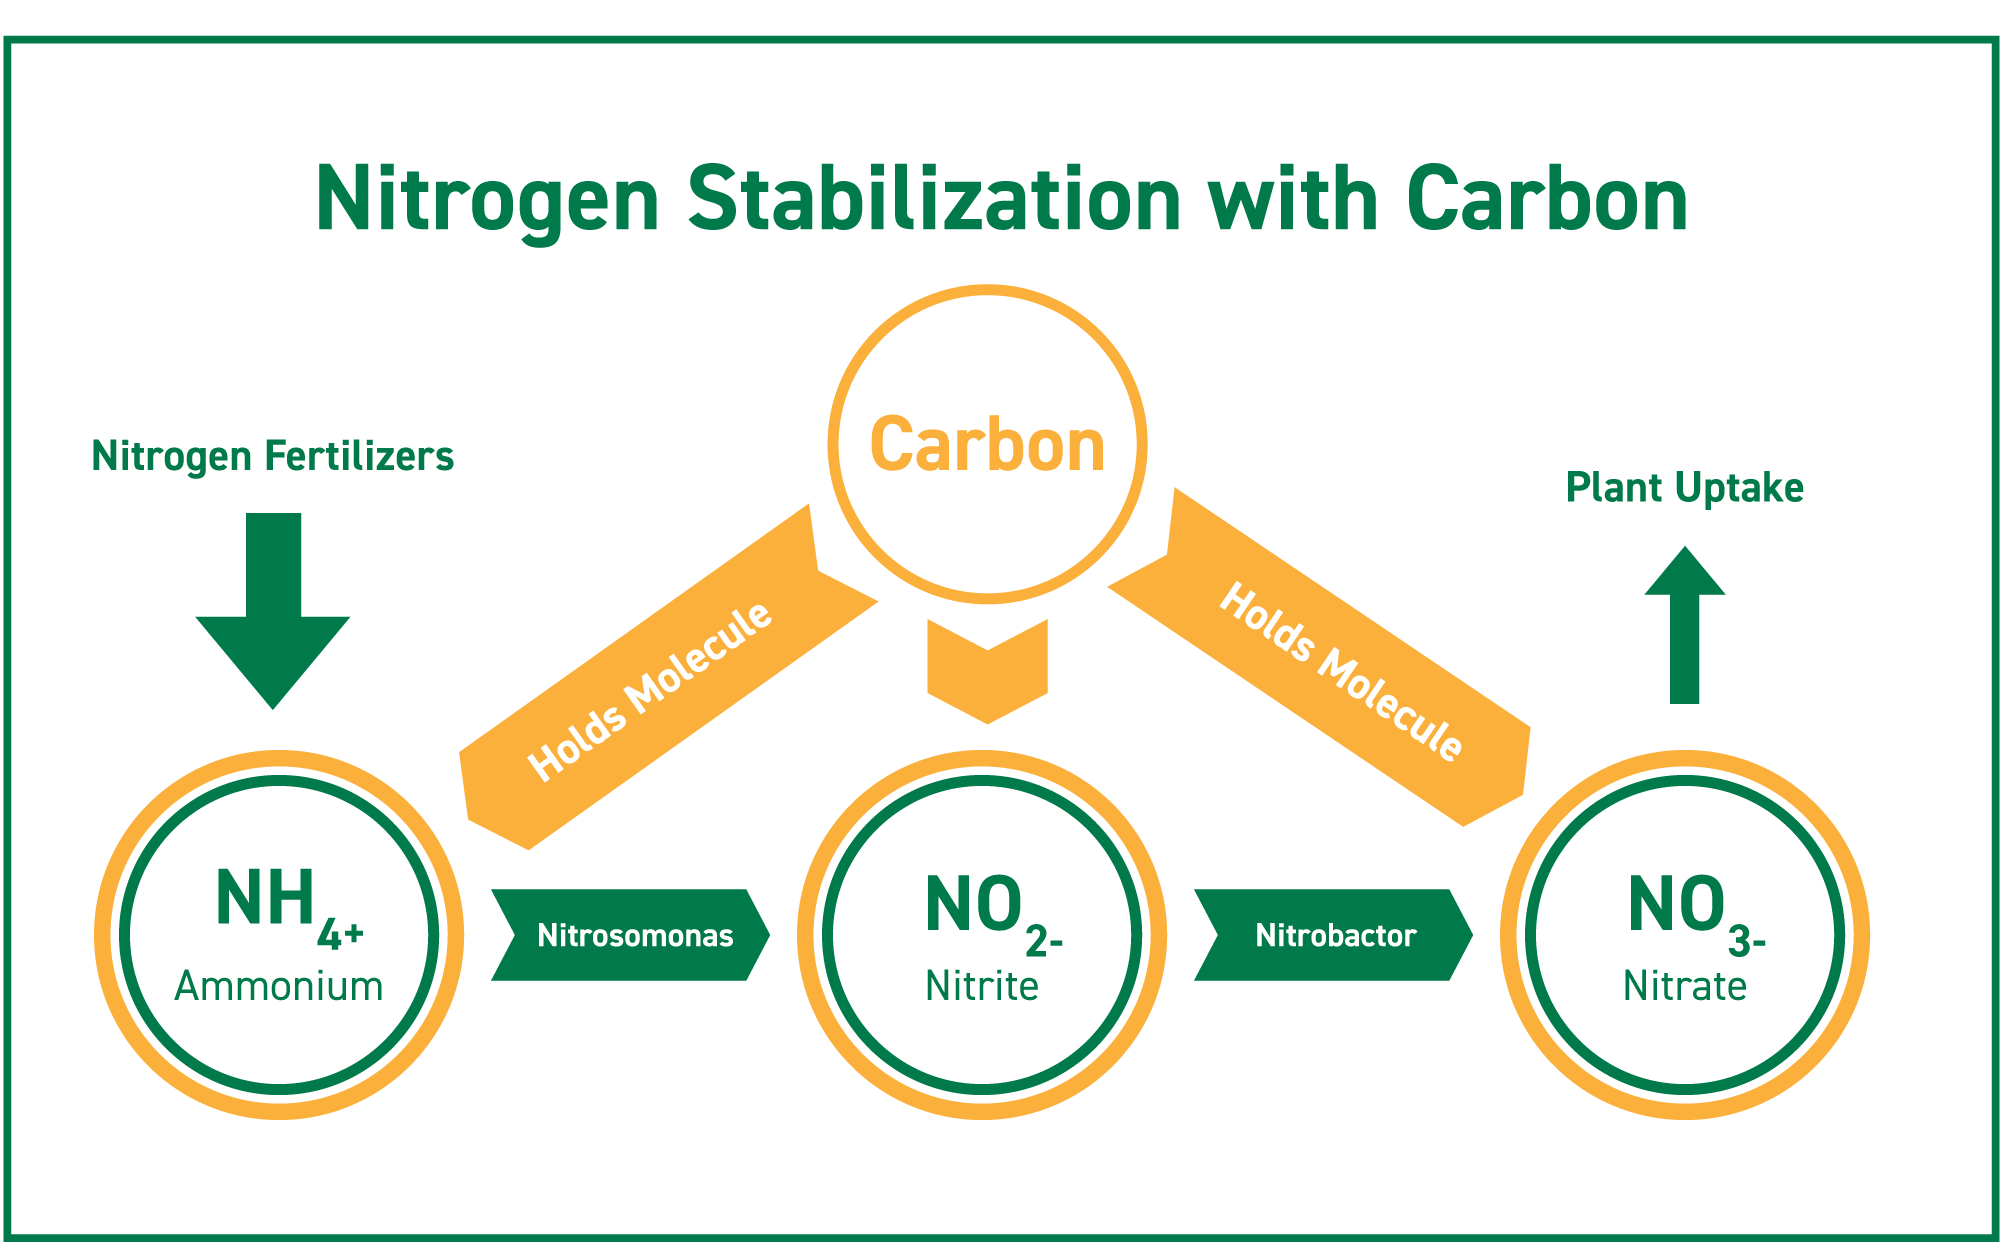 Carbon can help stabilize all three forms of nitrogen: ammonium, nitrite, and nitrate